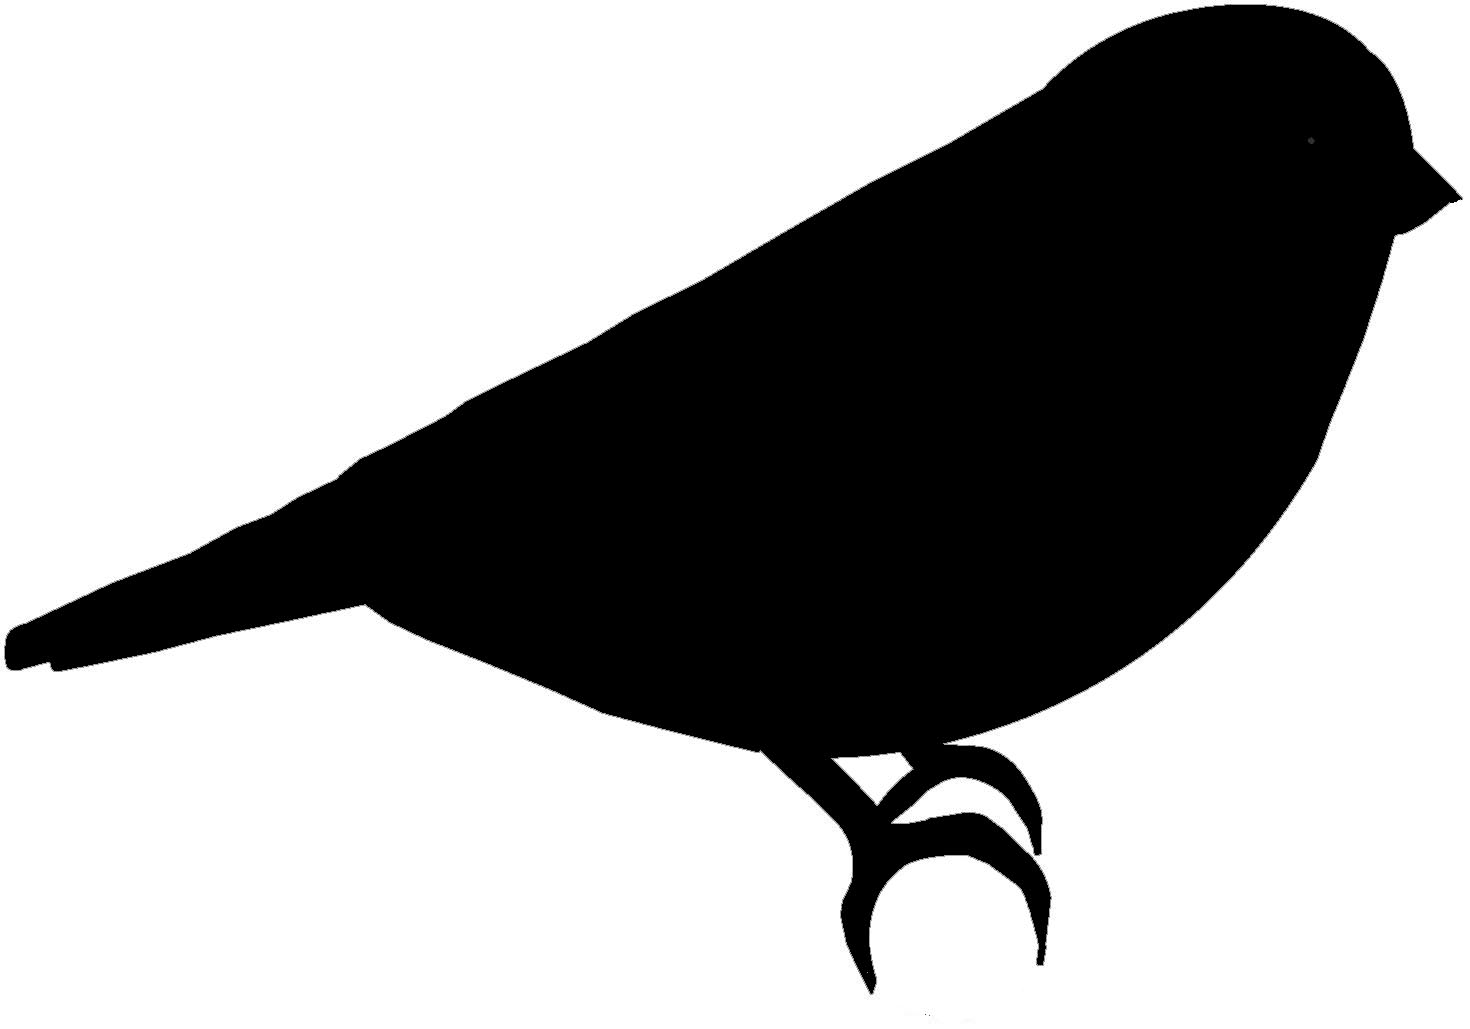 1470x1029 Bird Outline Clip Art